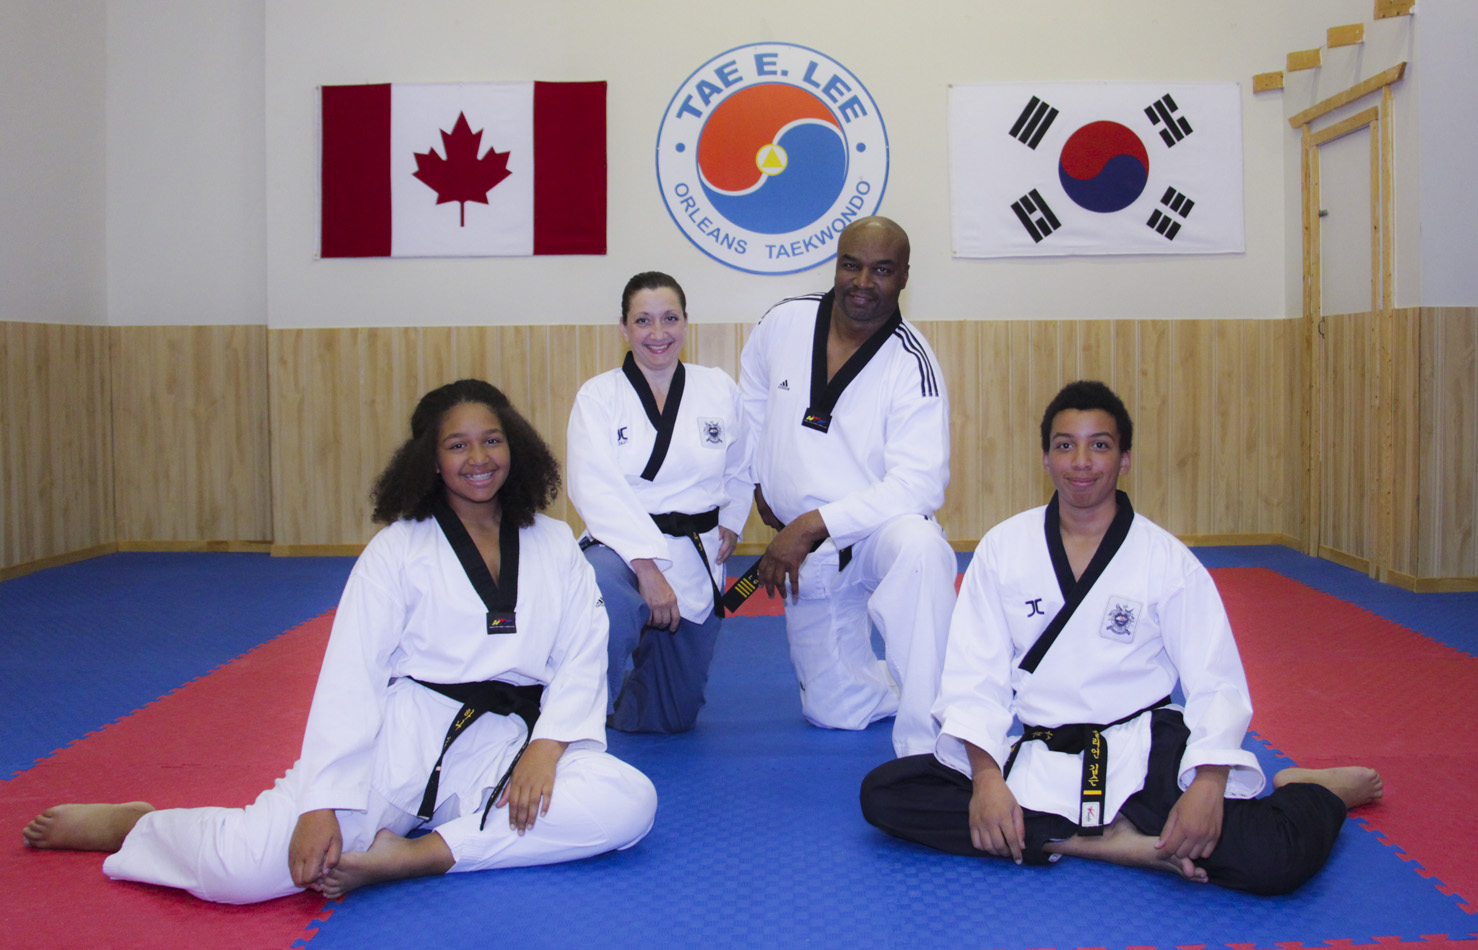 Orleans Taekwondo, with Master and Mrs Gibson.